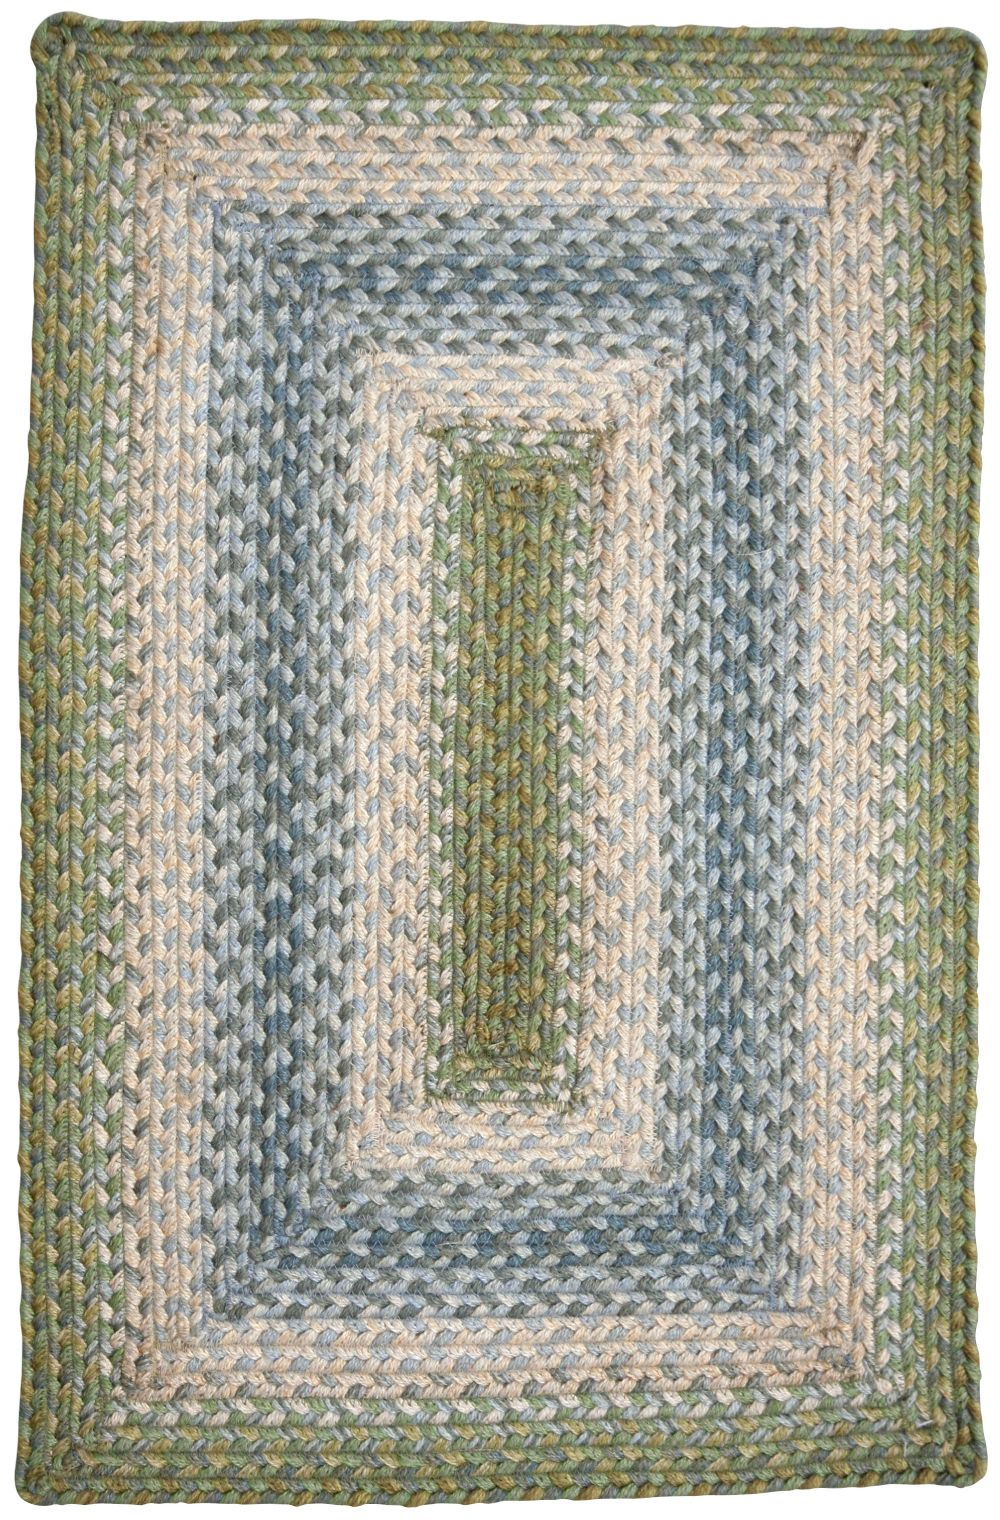 homespice decor ocean maze braided area rug collection